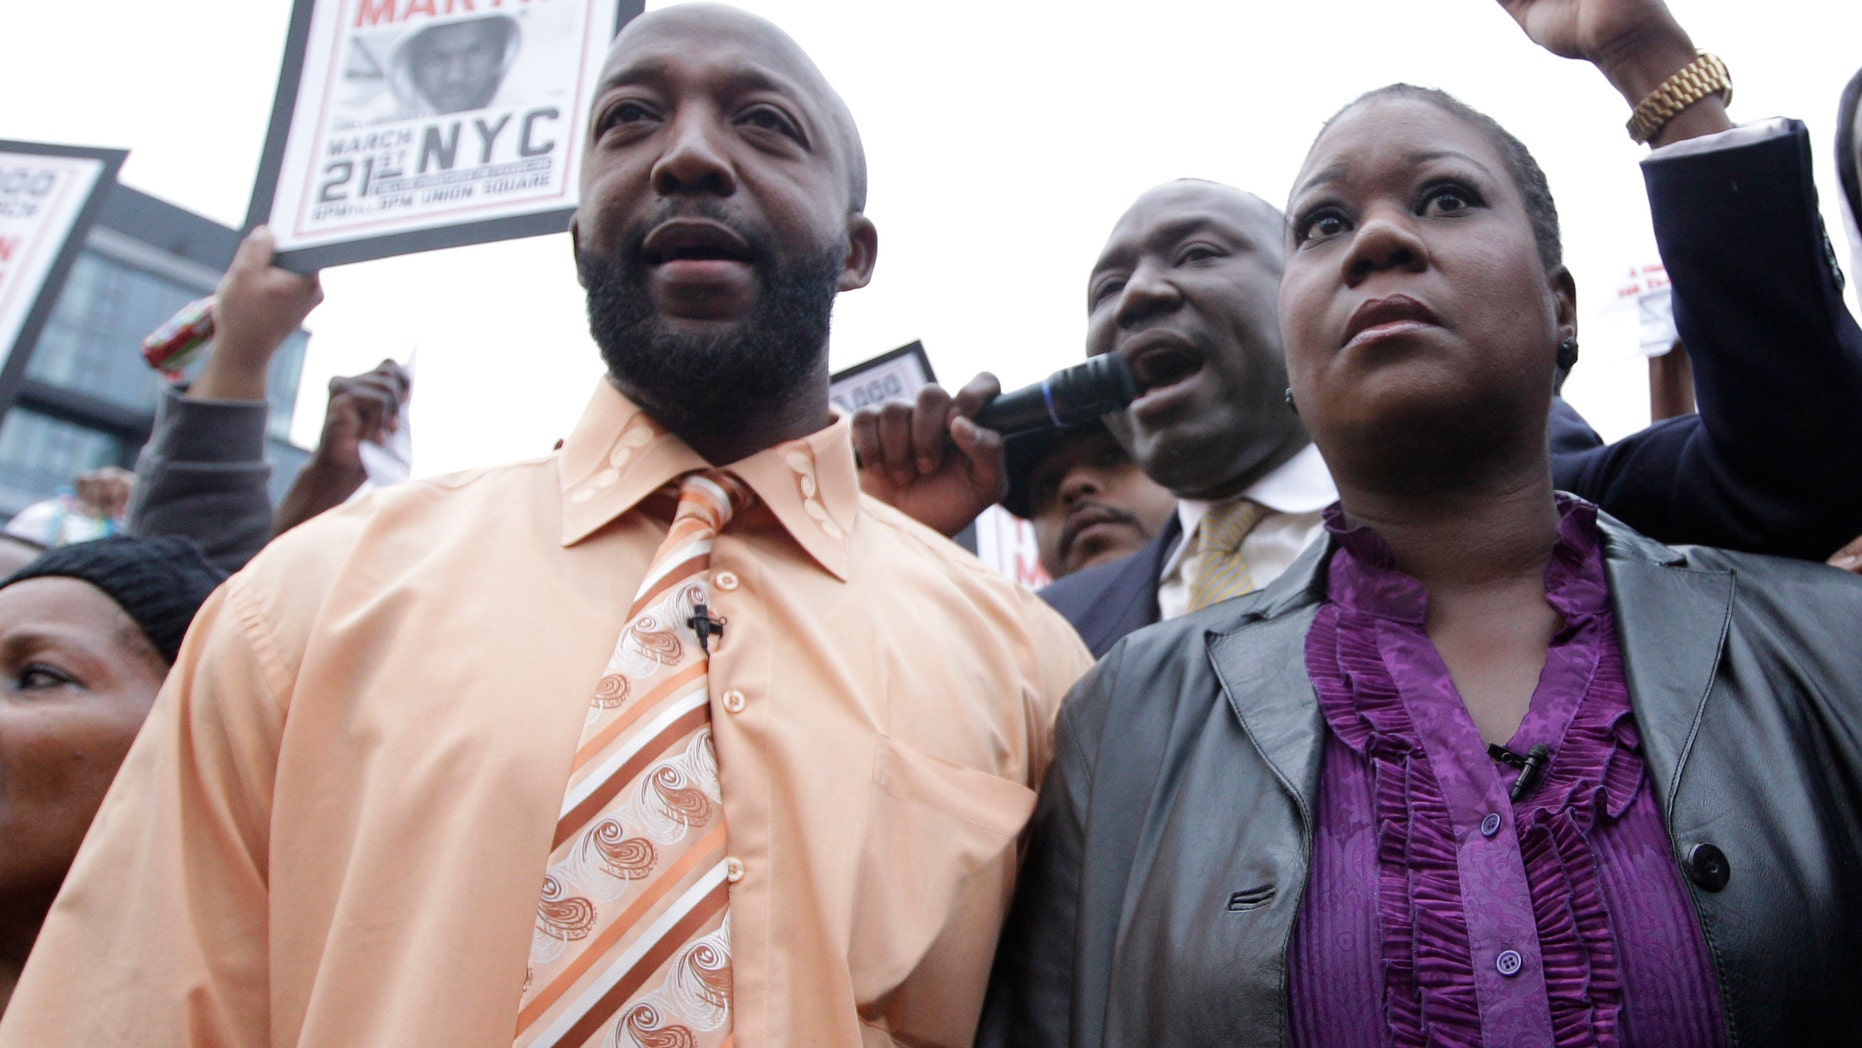 Trayvon Martin's parents Tracy Martin, left, and Sybrina Fulton, center, are joined by an unidentified woman during the Million Hoodie March in Union Square in March, 2012 in New York.